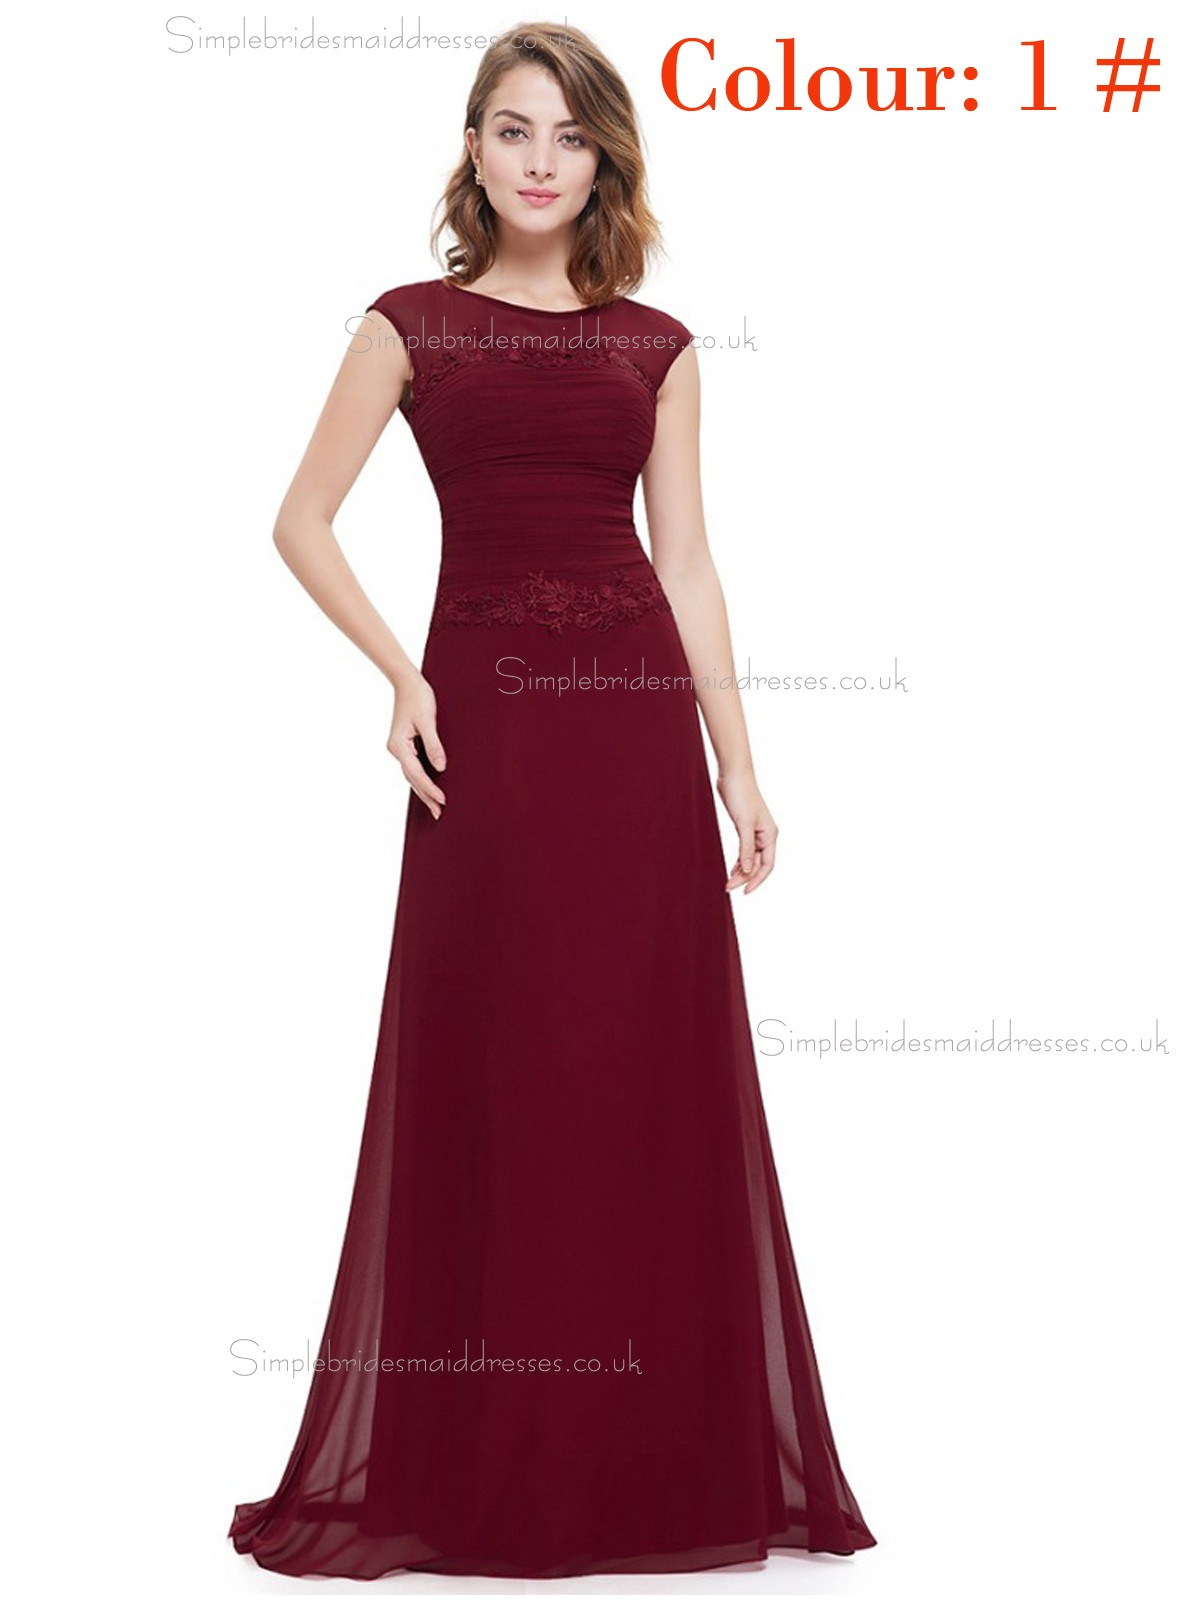 Red bridesmaid dresses uk burgundy bridesmaid dresses burgundy online amazing round neck long elegant sexy bridesmaid dress ombrellifo Choice Image